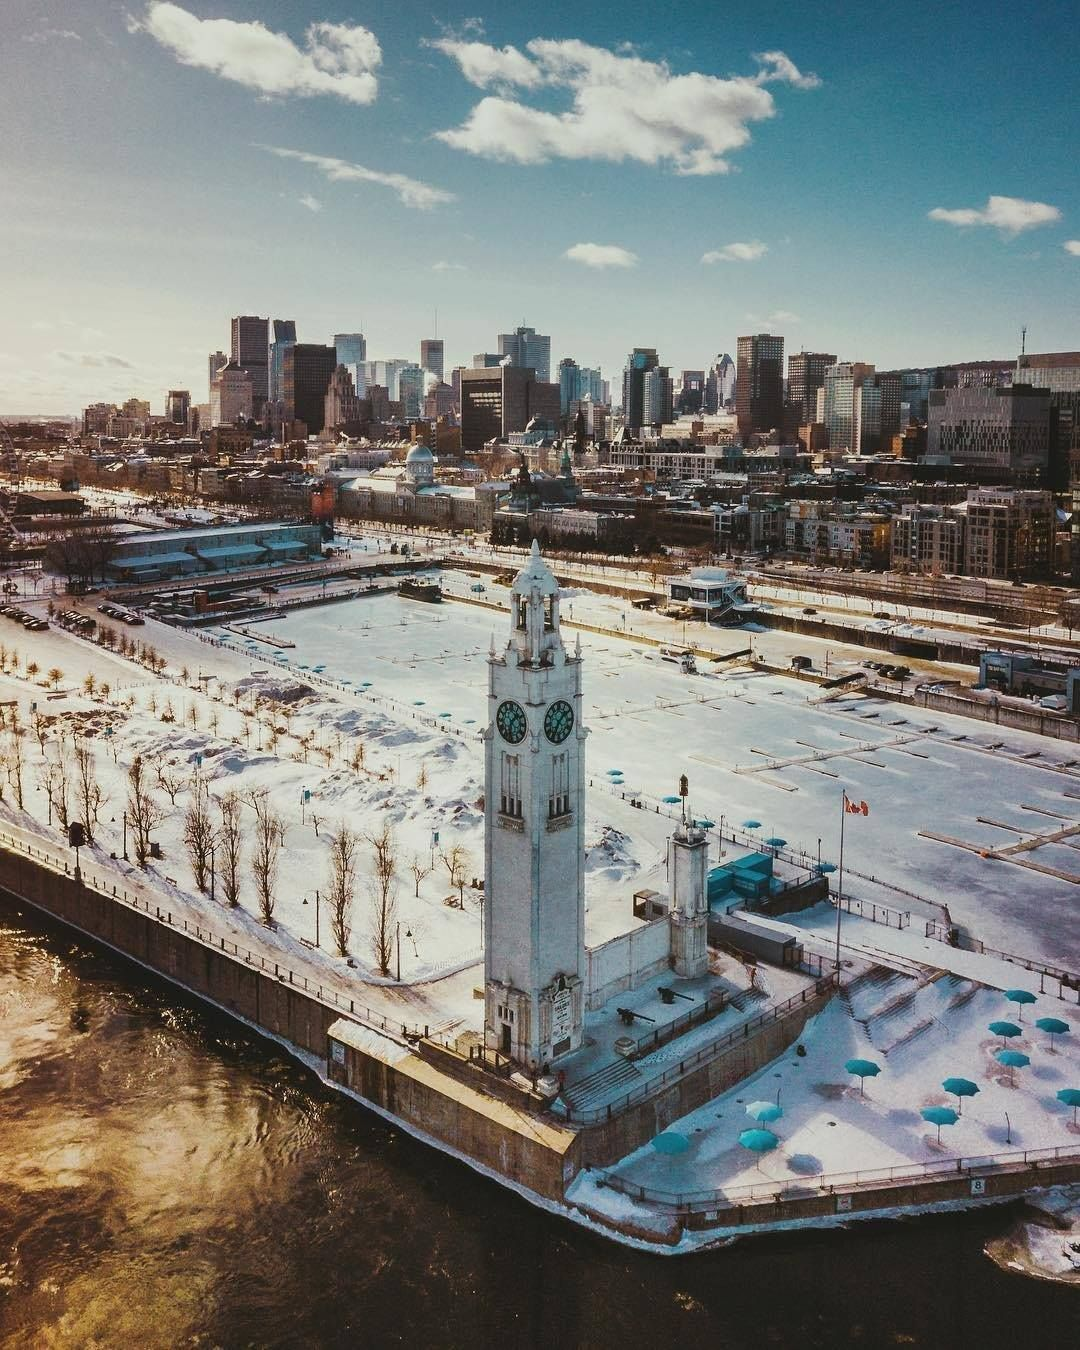 Old Port Of Montreal: The Old Port Of Montréal Waiting For Spring #city #cities